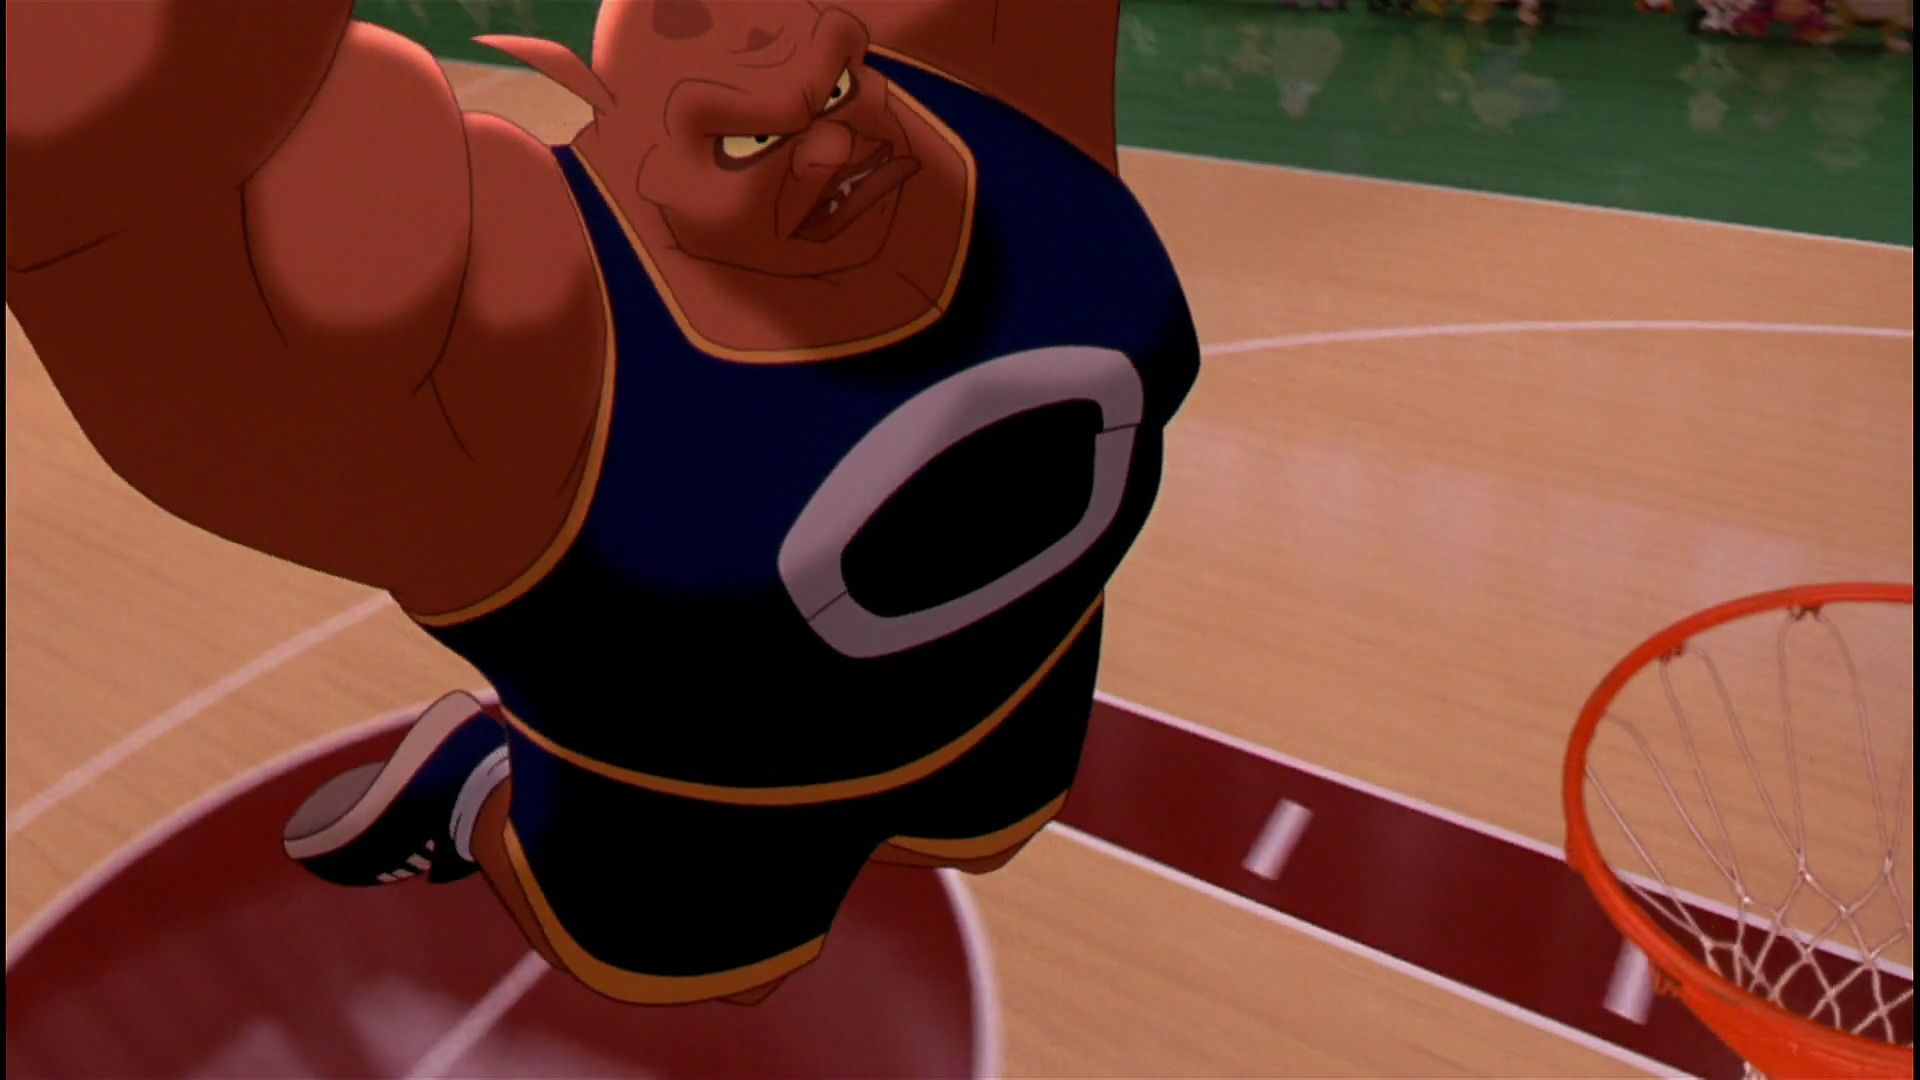 Pound about to slam dunk. | Space jam, Favorite character, Favorite movies